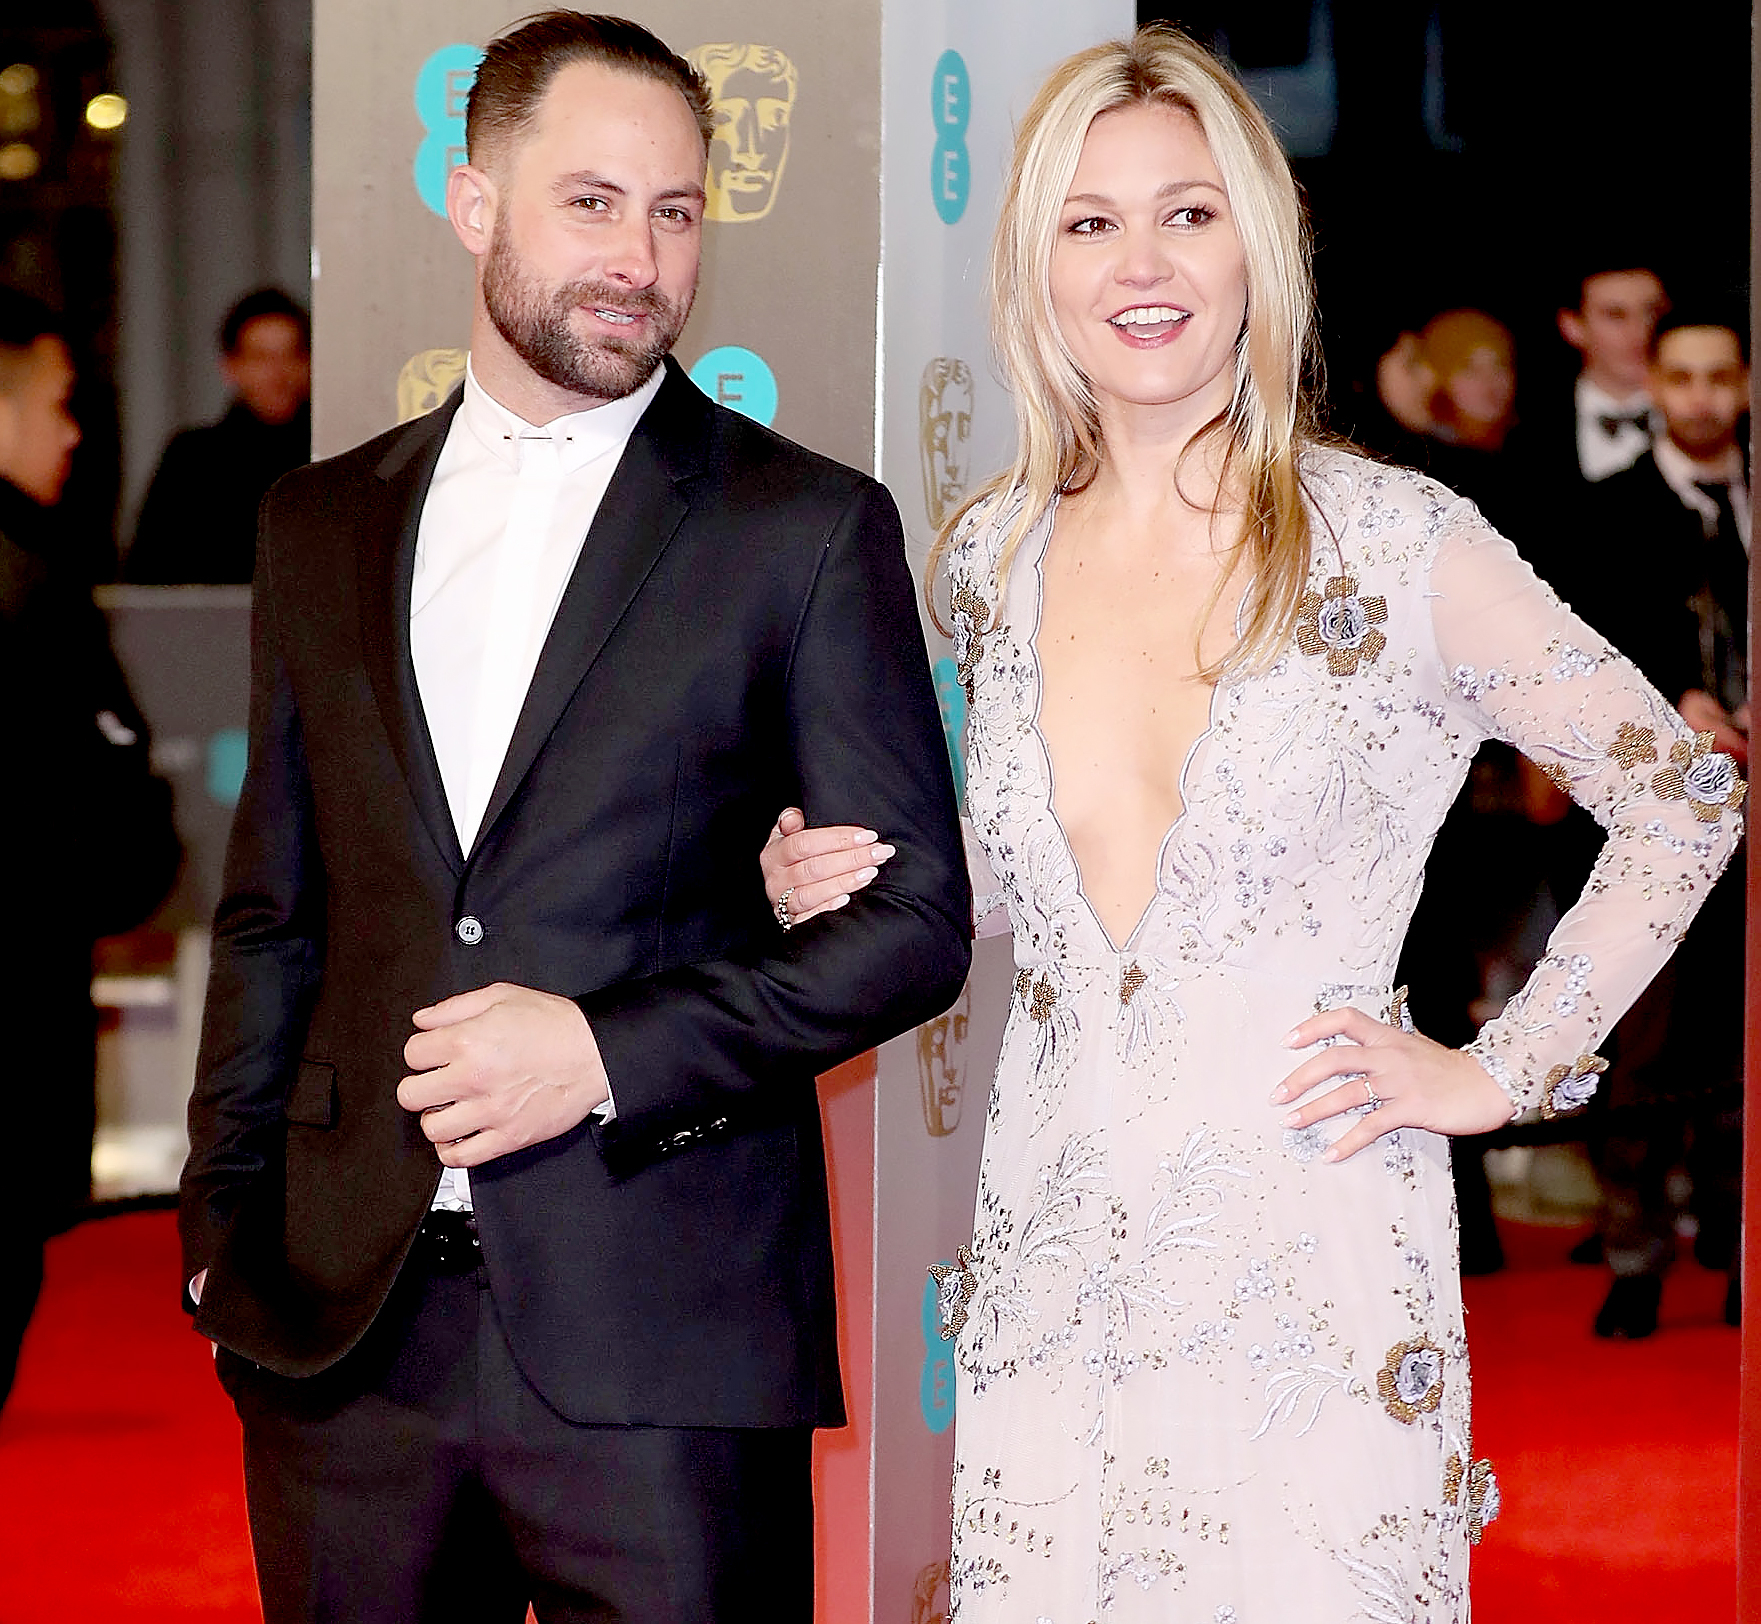 Preston J.Cook and Julia Stiles attend the 70th EE British Academy Film Awards (BAFTA) at Royal Albert Hall on February 12, 2017 in London, England.